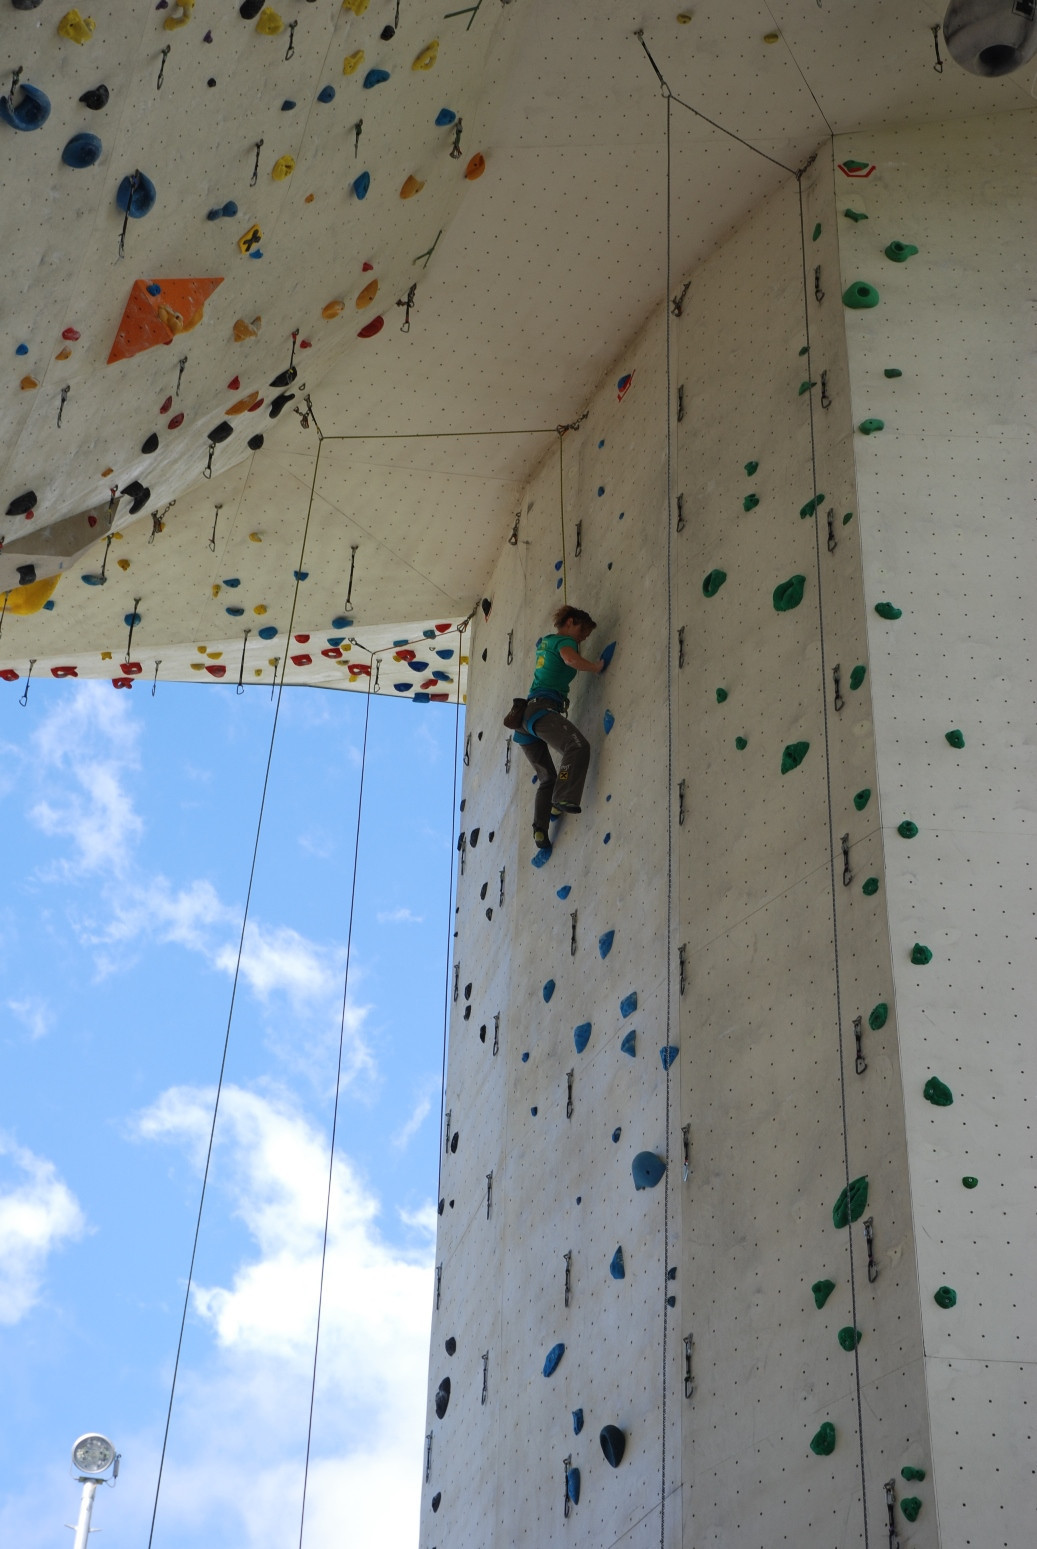 Imst has previously hosted Paraclimbing events ©Kletterzentrum